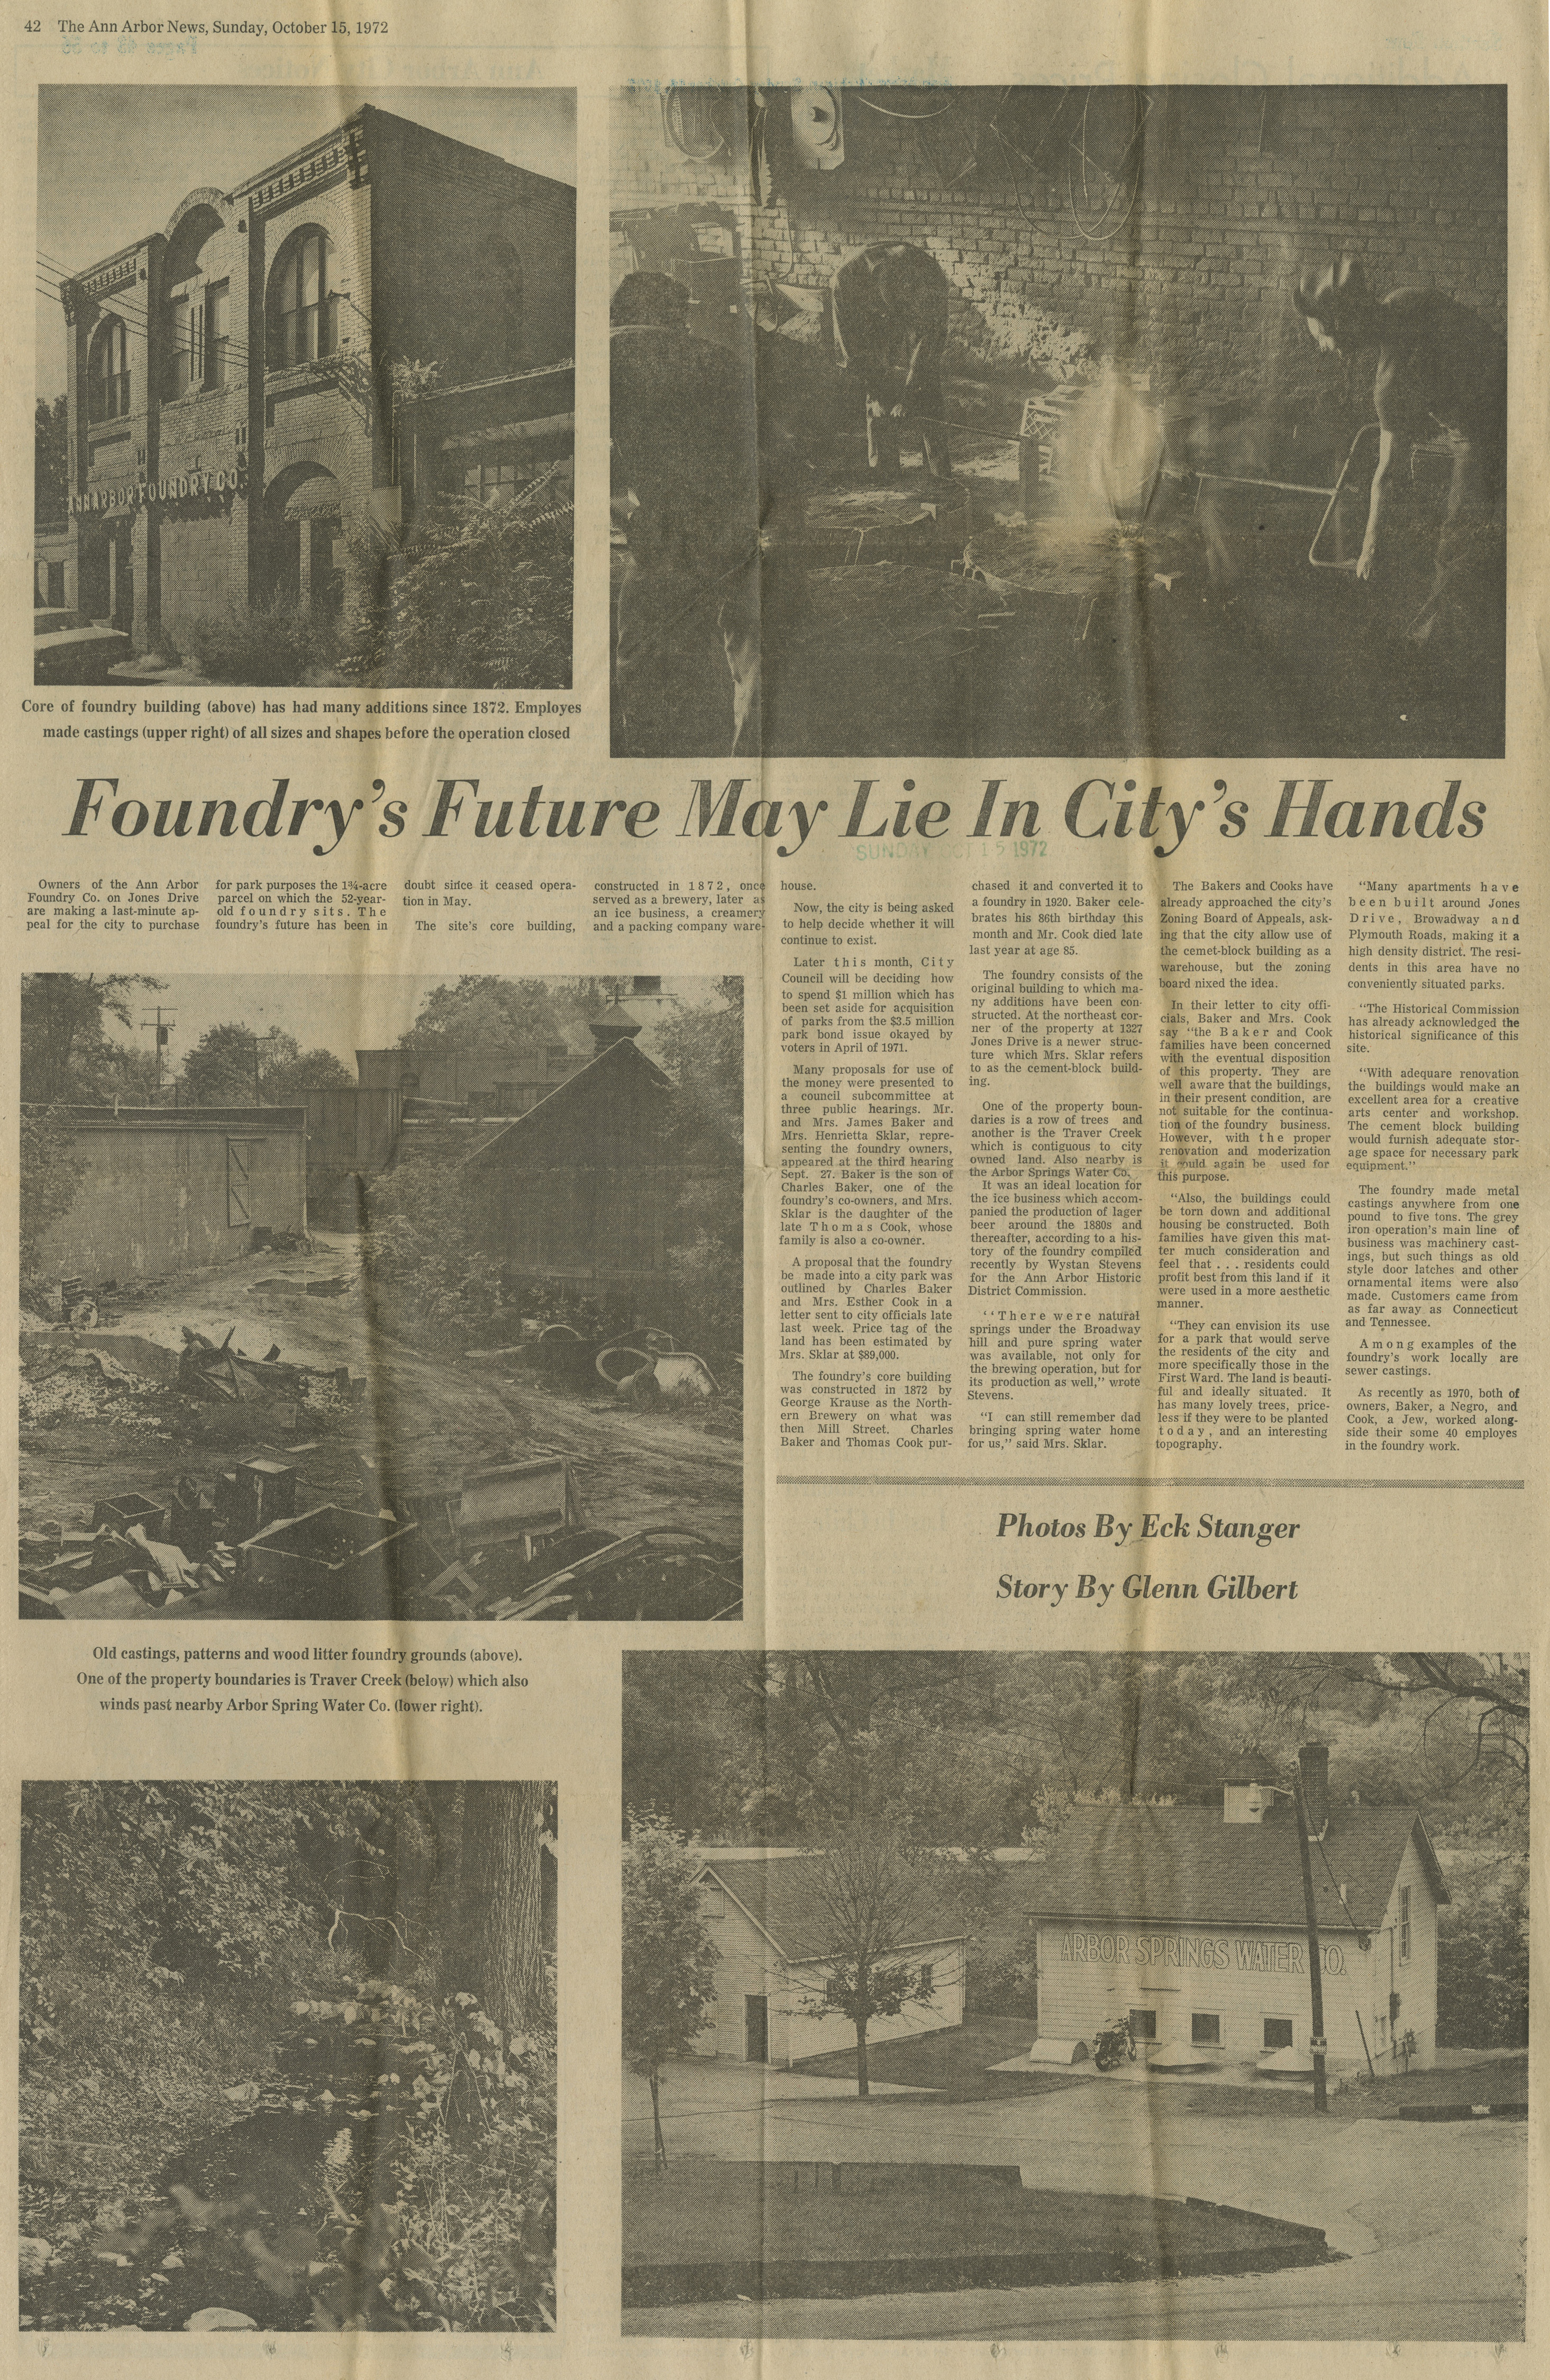 Foundry's Future May Lie In City's Hands image